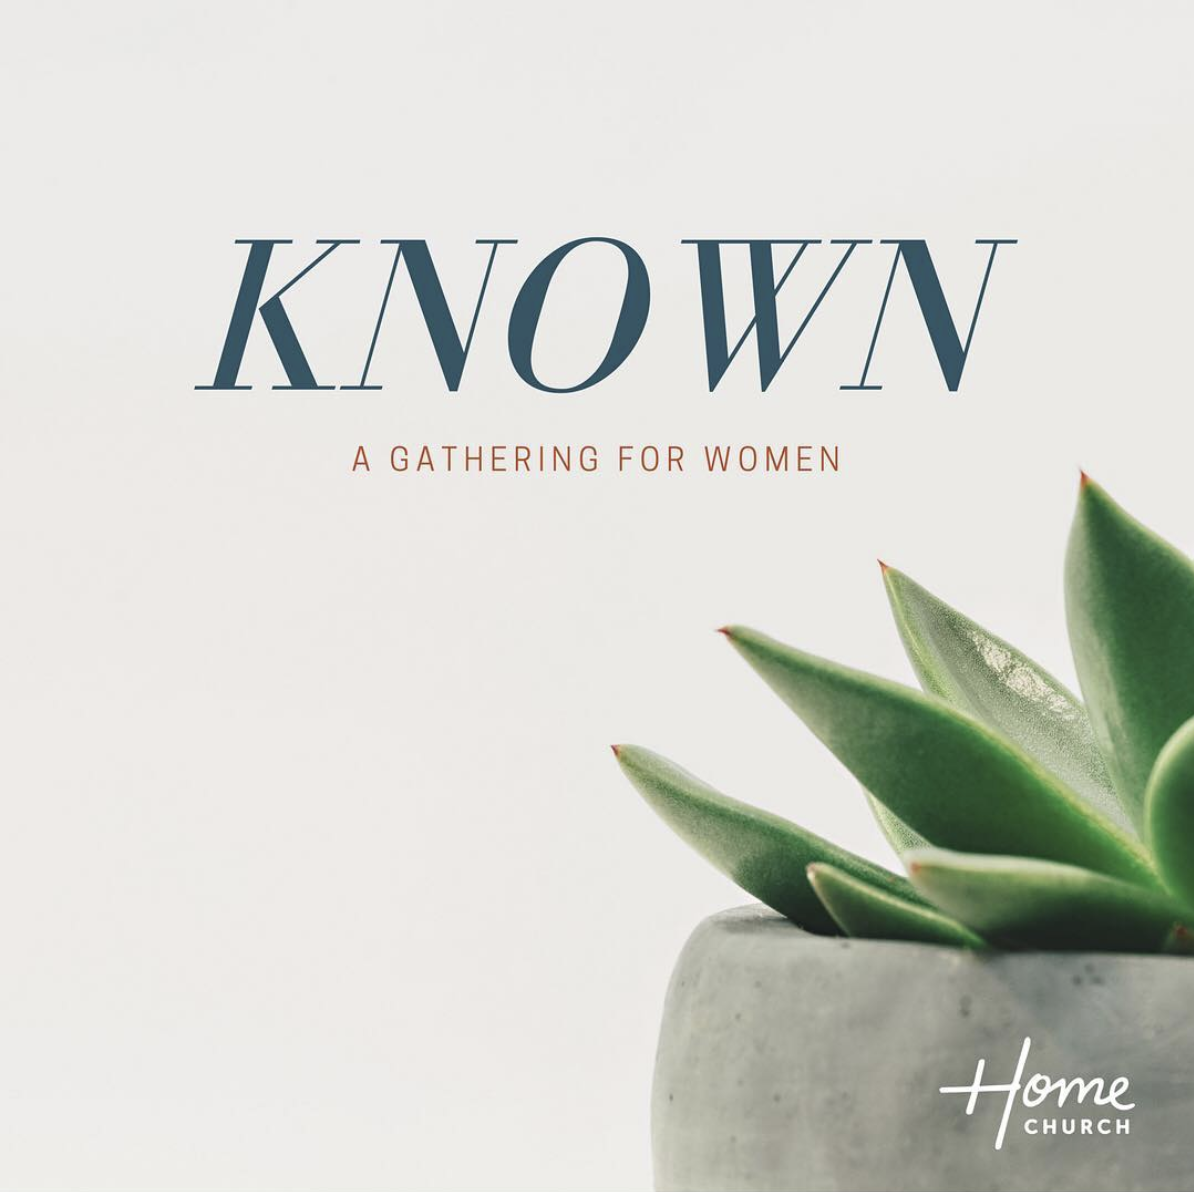 known nashville women gathering home church